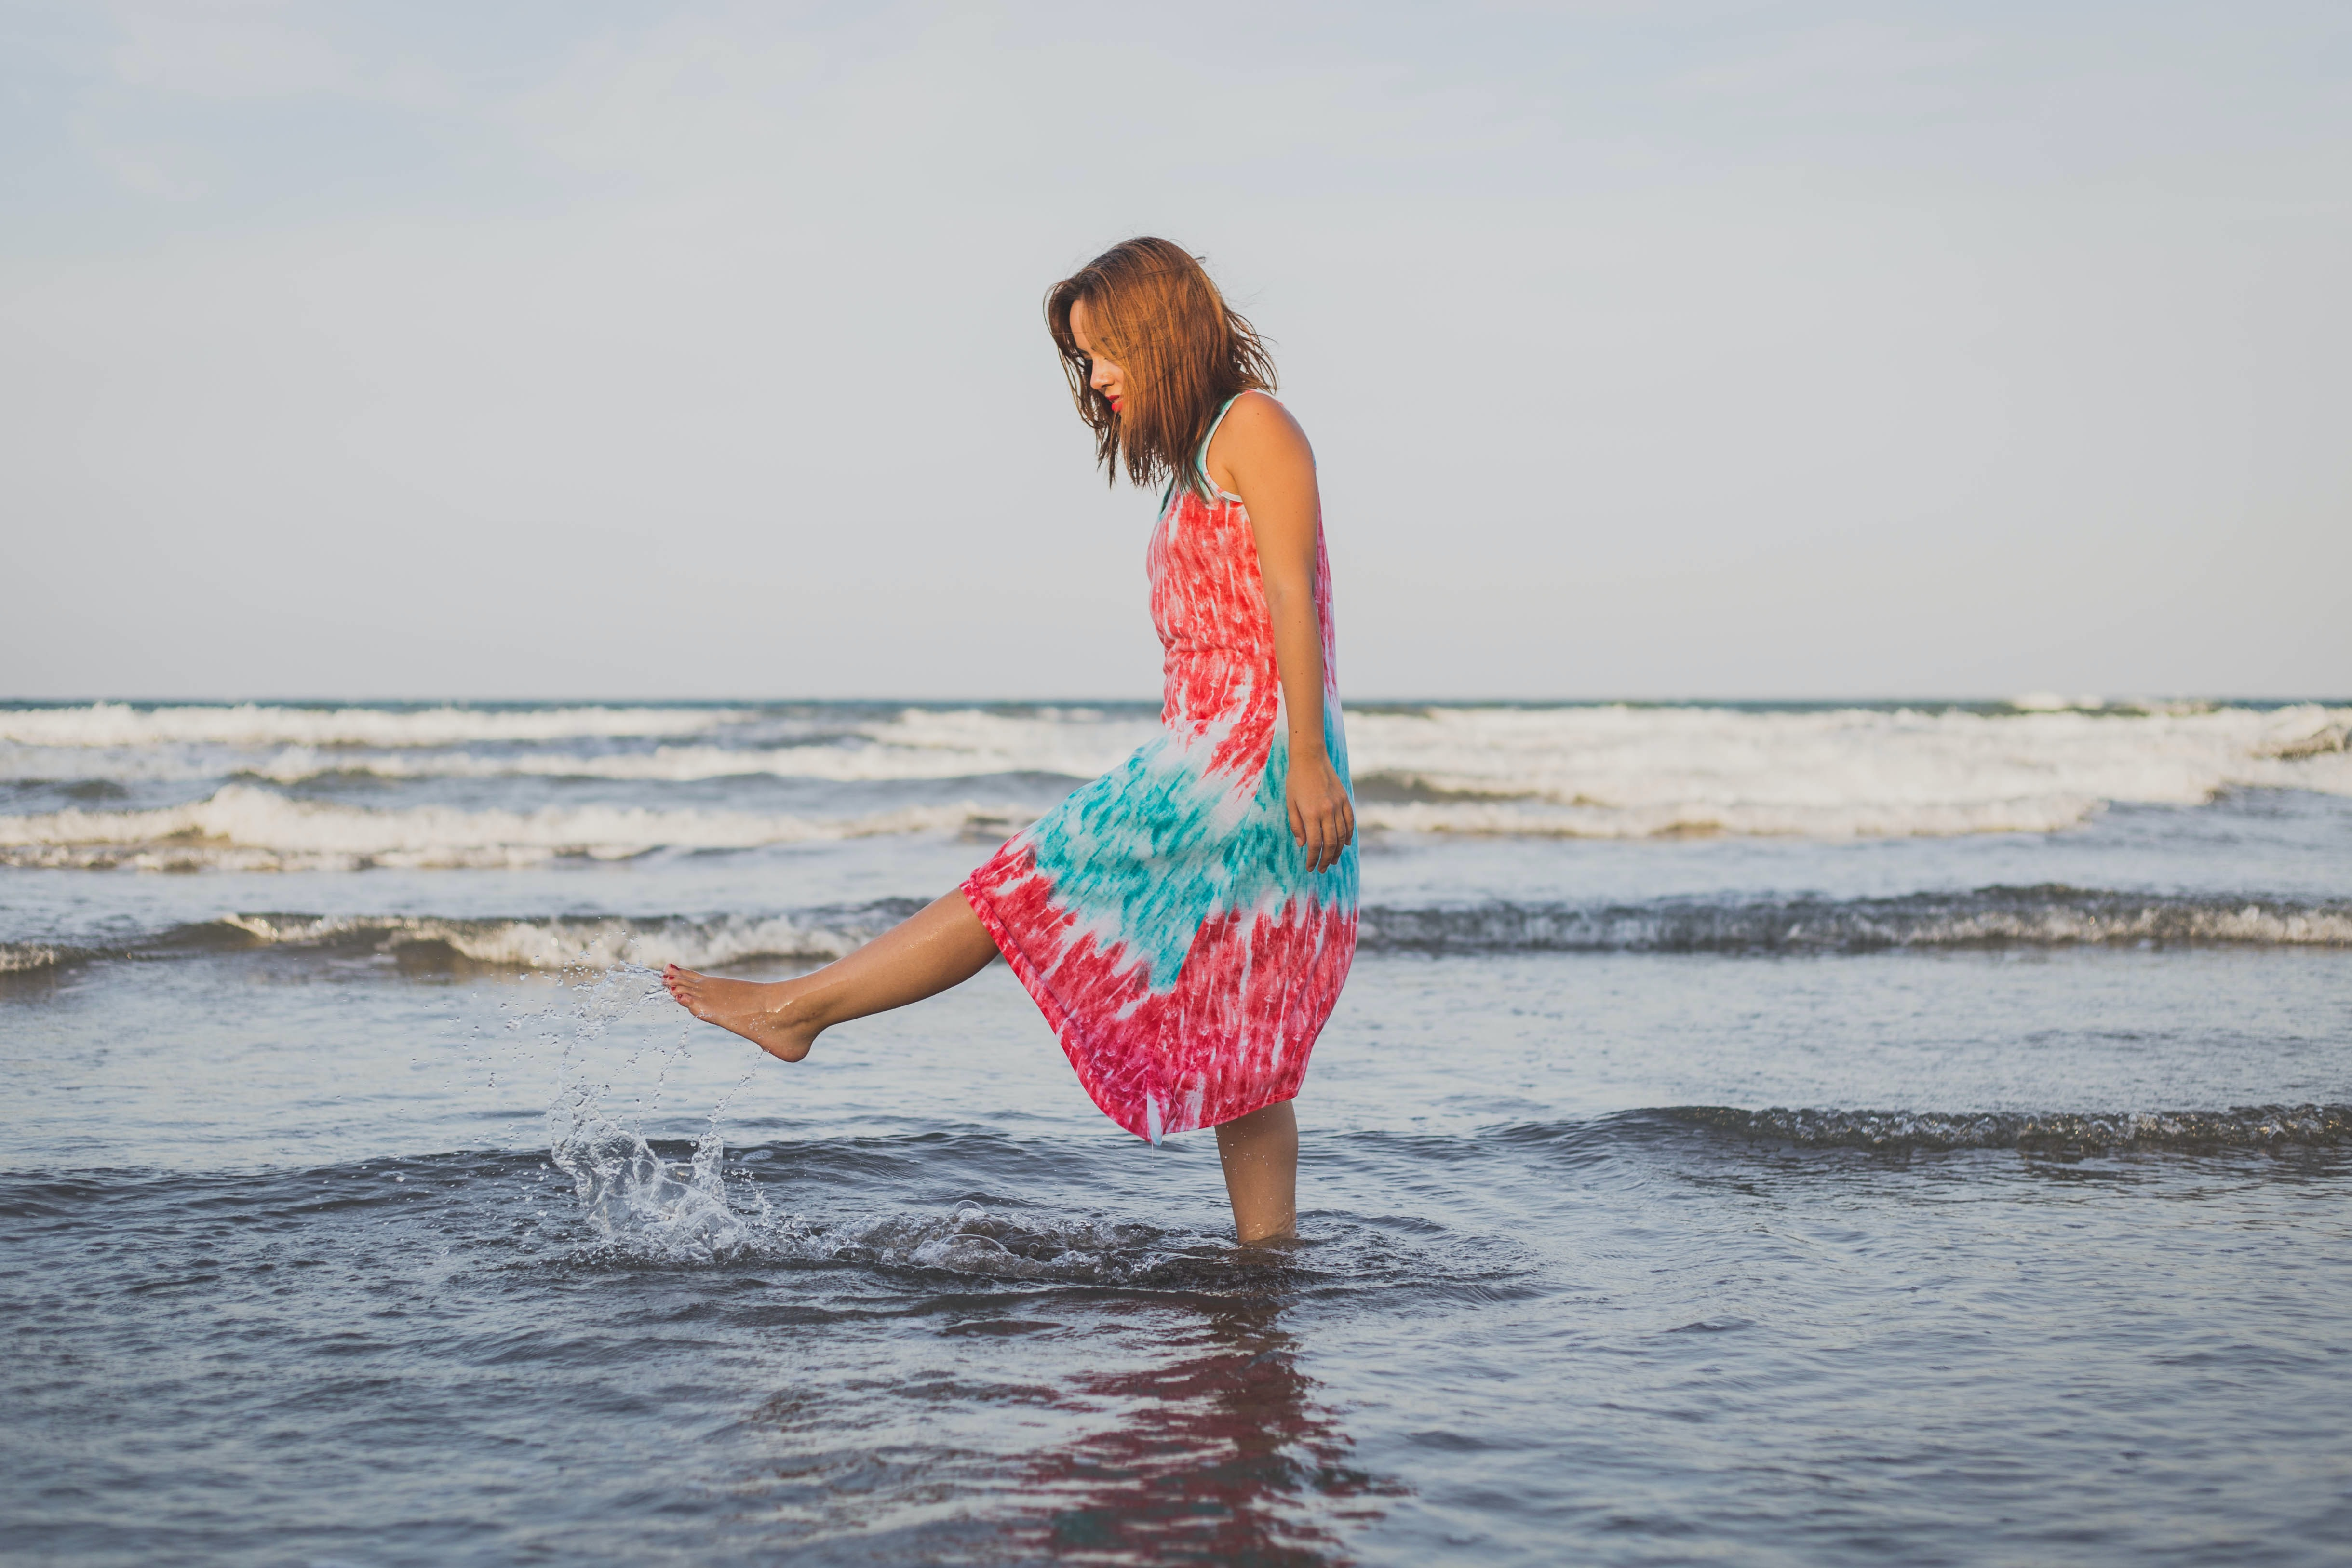 woman playing with water on shore during daytime